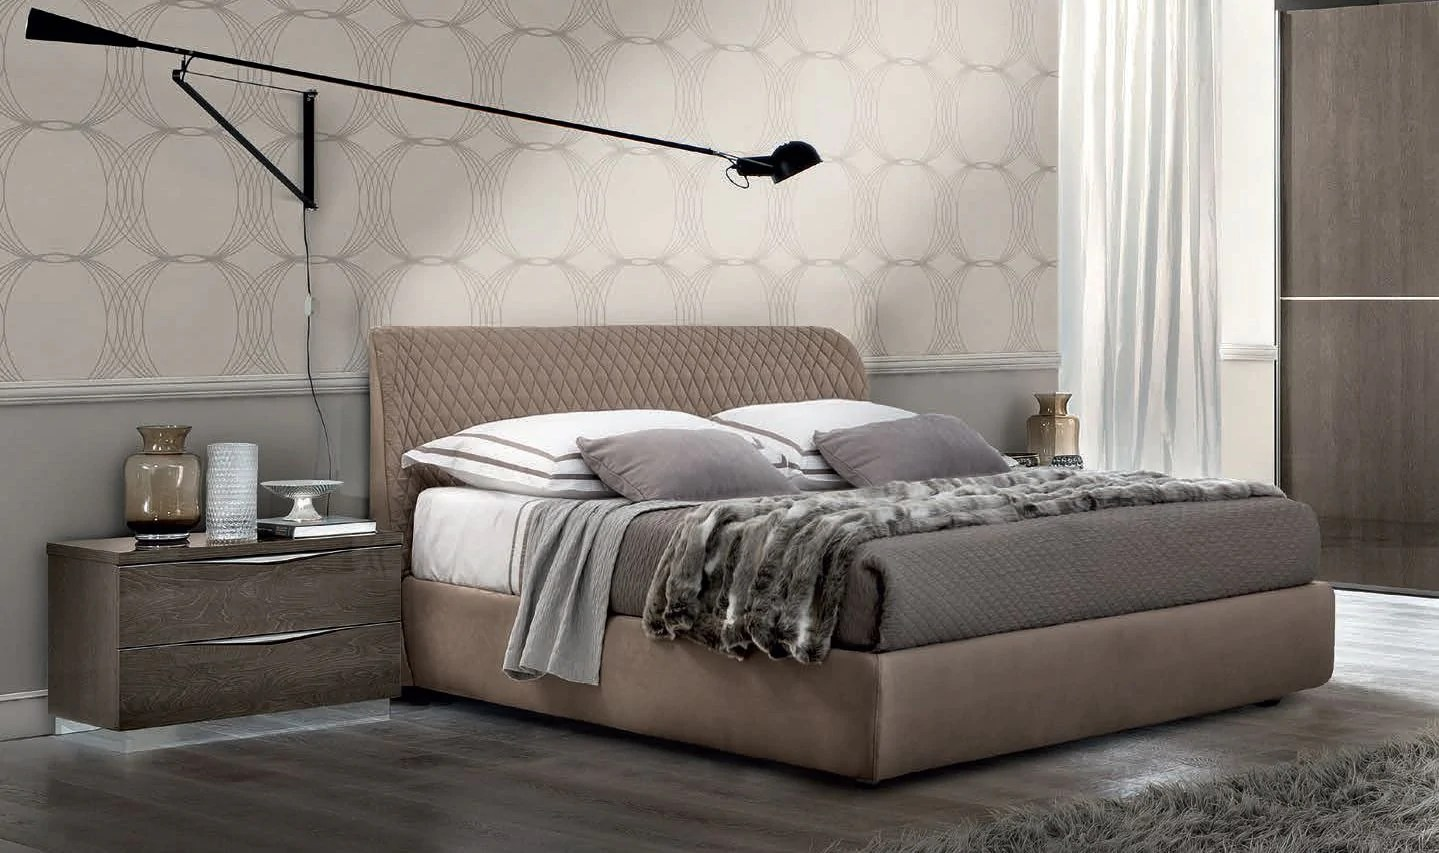 Italian Furniture Bedroom Platinum Night Letto Kleo High Gloss Italian Bed Frame